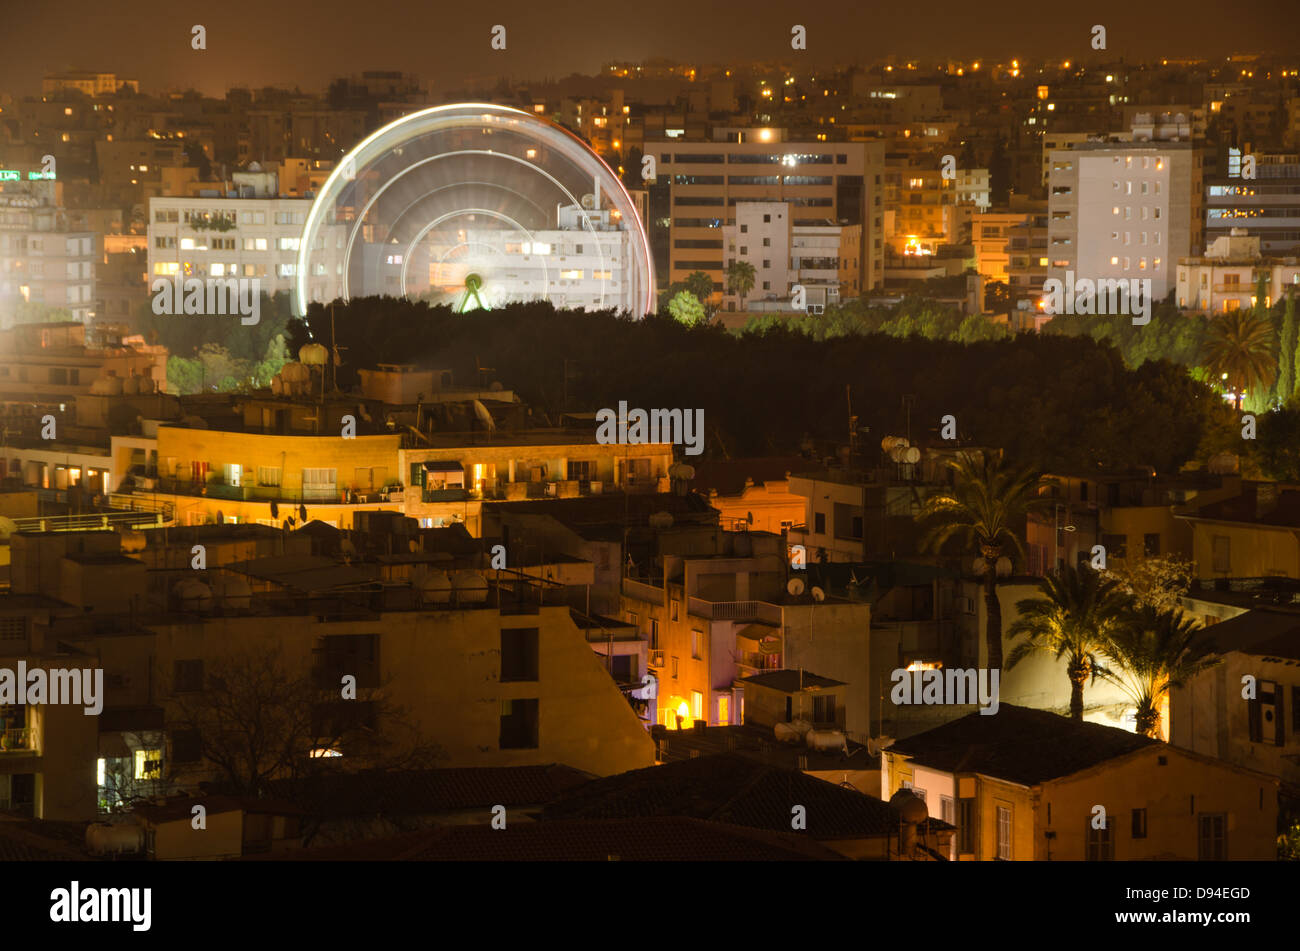 a view of nicosia, cyprus at night - Stock Image